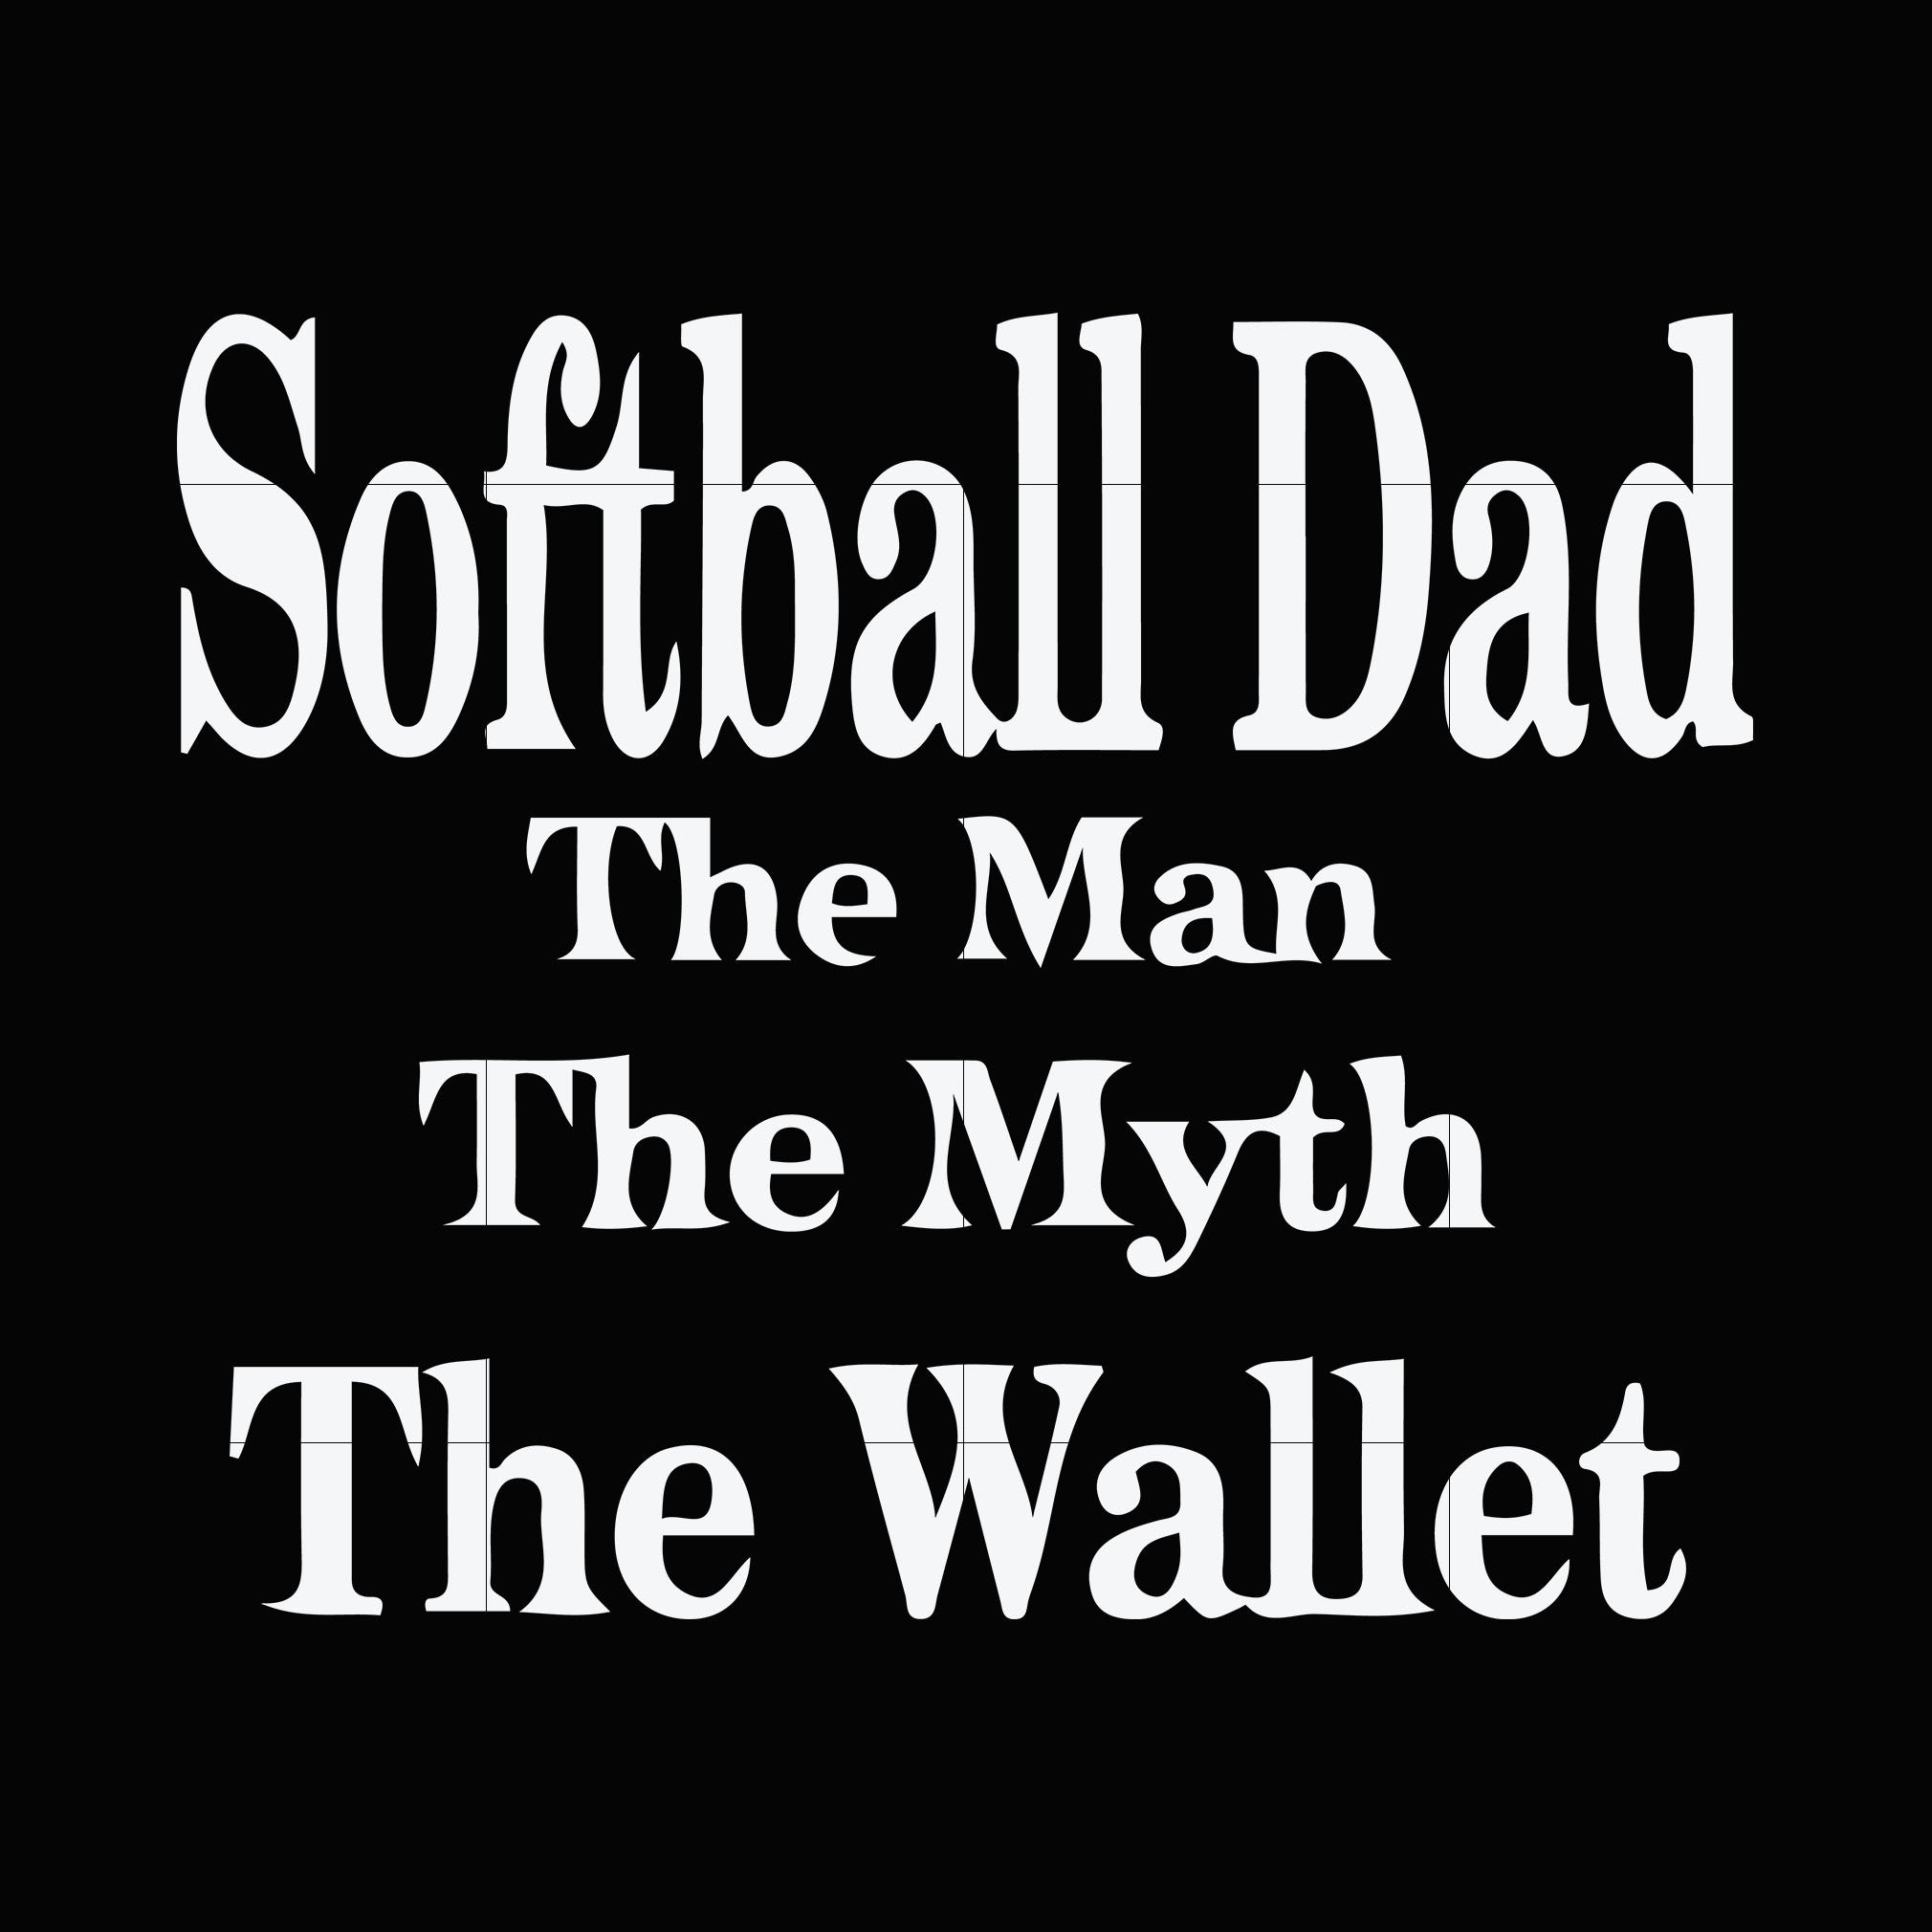 Softball dad the man the myth the wallet svg,dxf,eps,png digital file